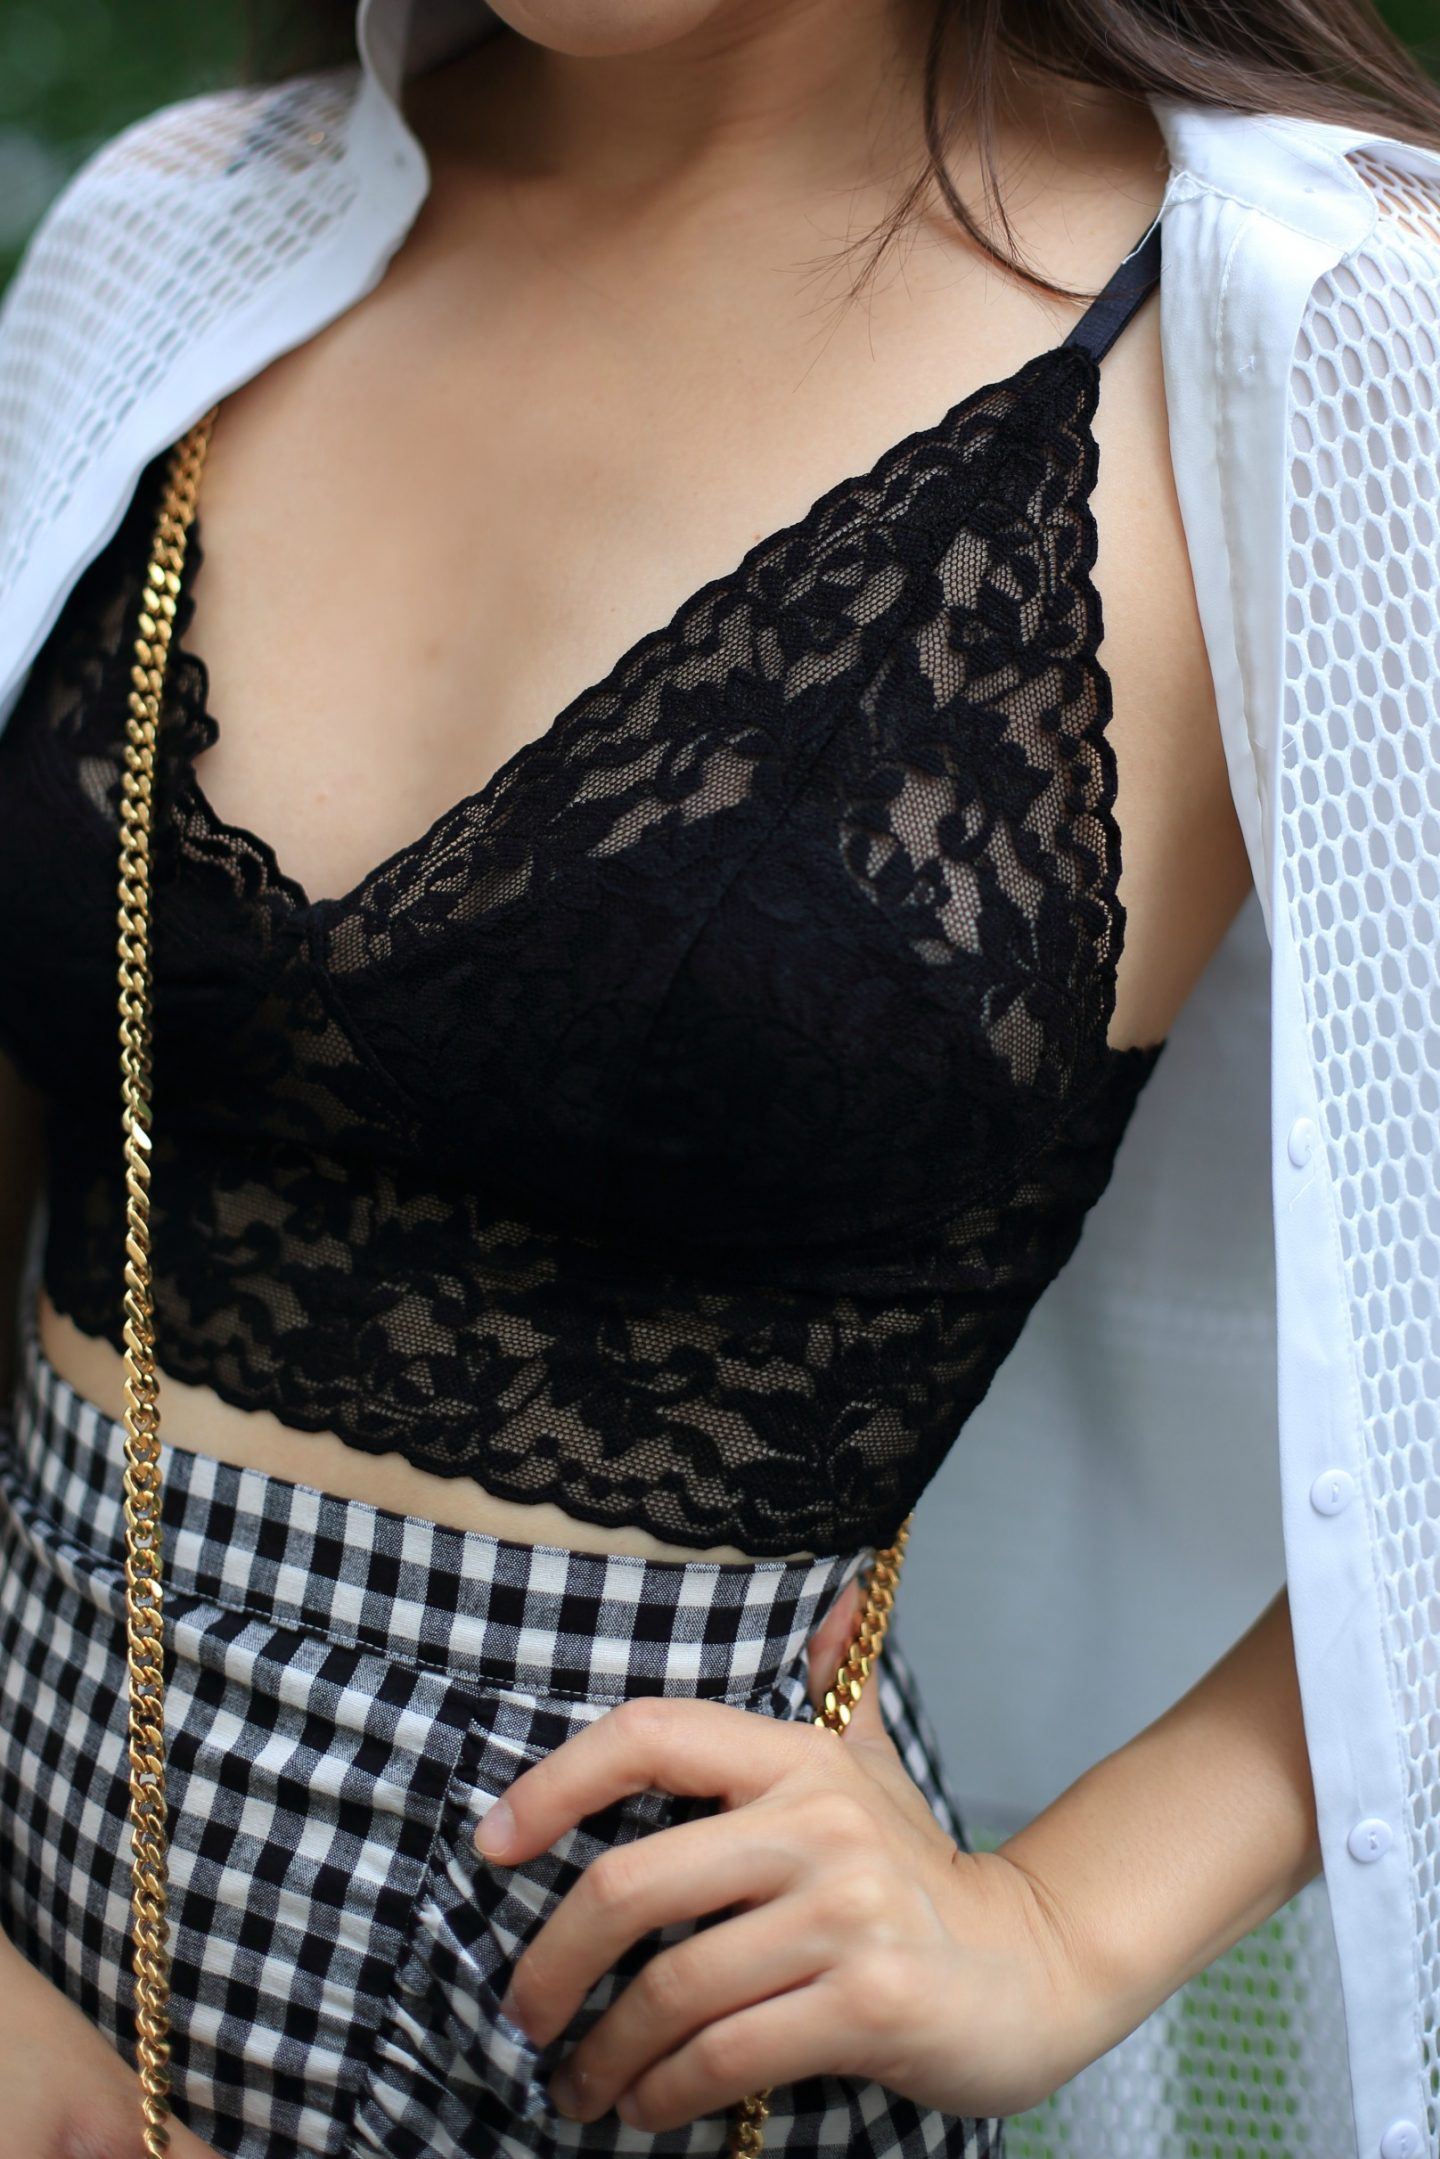 c30219884a The Must-Have Lace Bralette + 10 Ways to Wear - Sensible Stylista